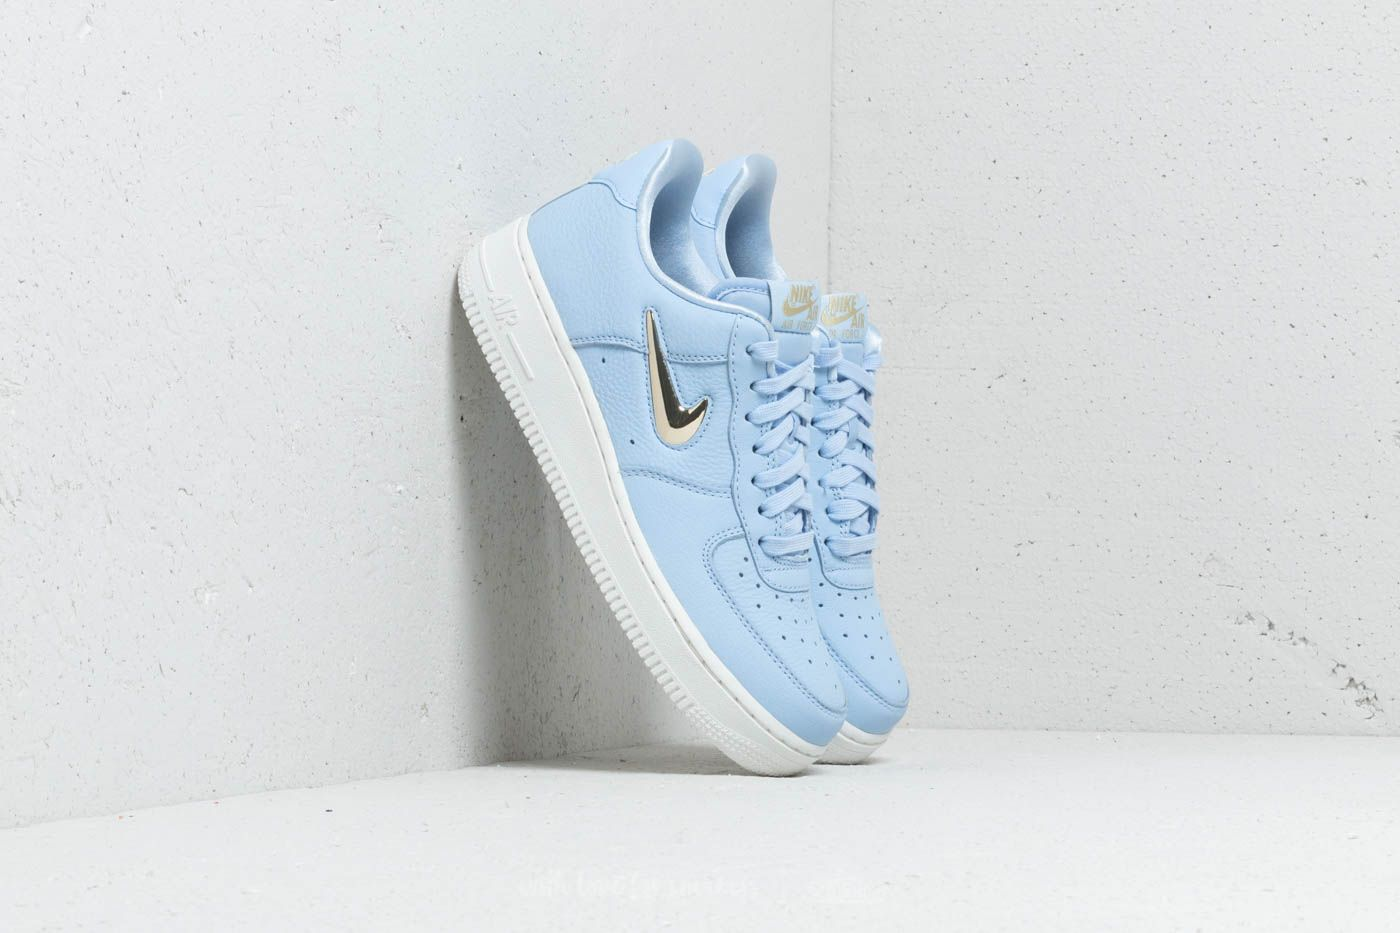 finest selection 151f3 44de7 Nike Wmns Air Force 1 07 Premium LX Royal Tint Mtlc Gold Star